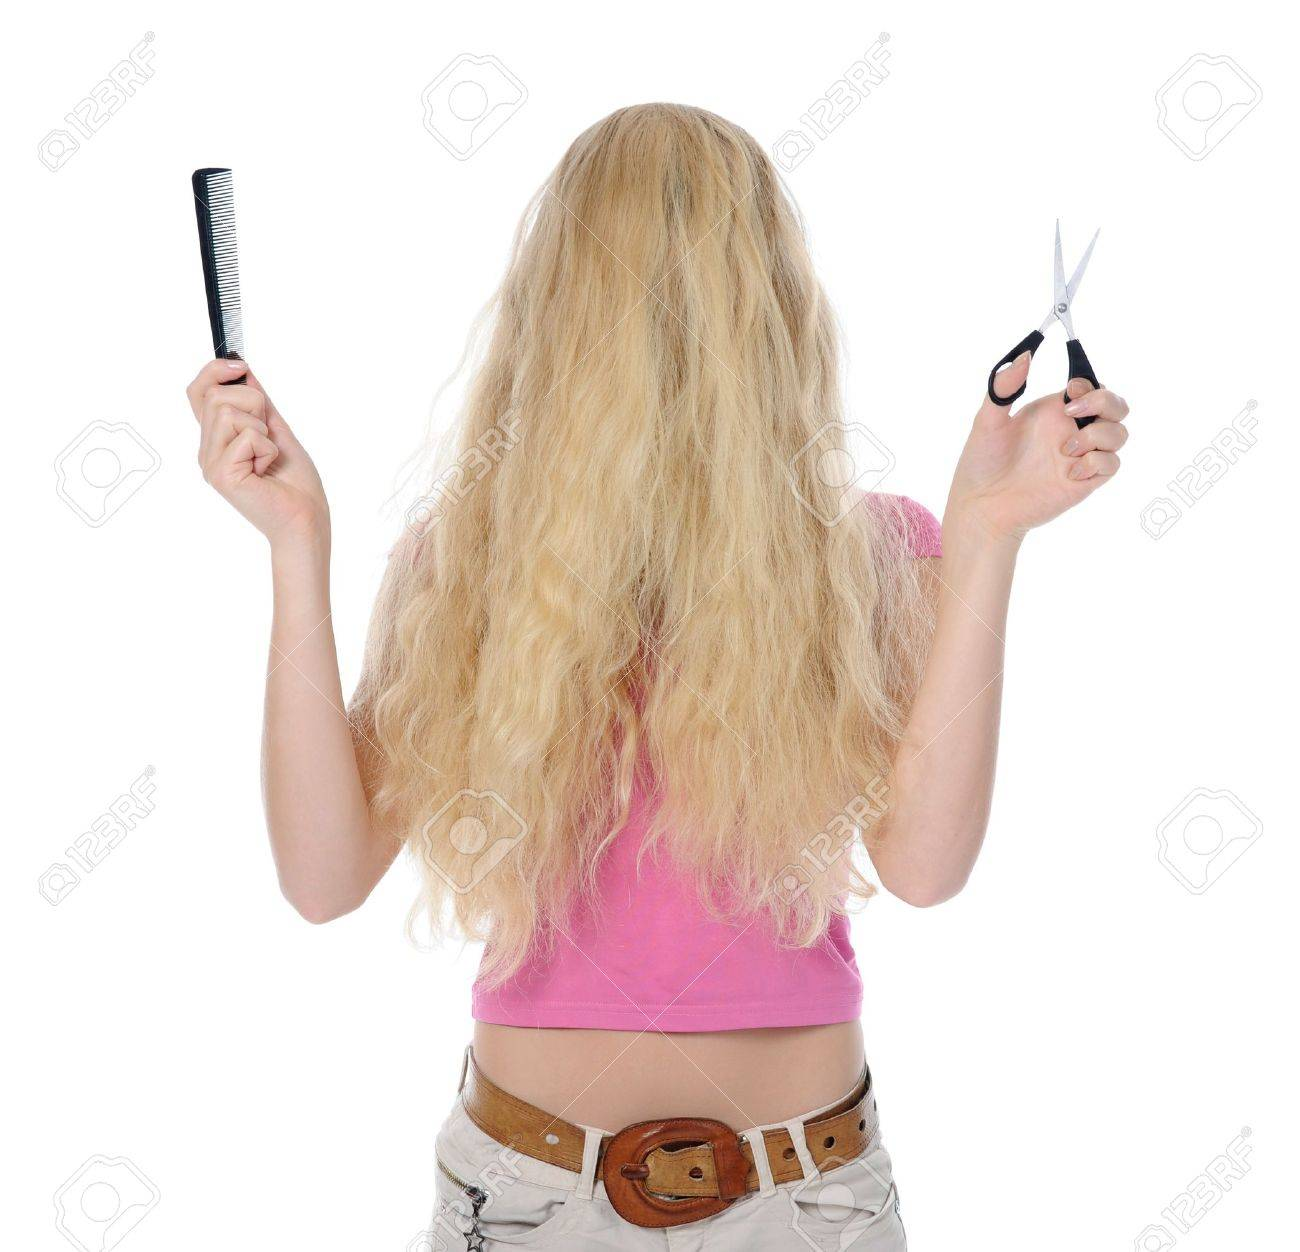 young woman with backcombing hair and scissors. Isolated on white background Stock Photo - 8061880